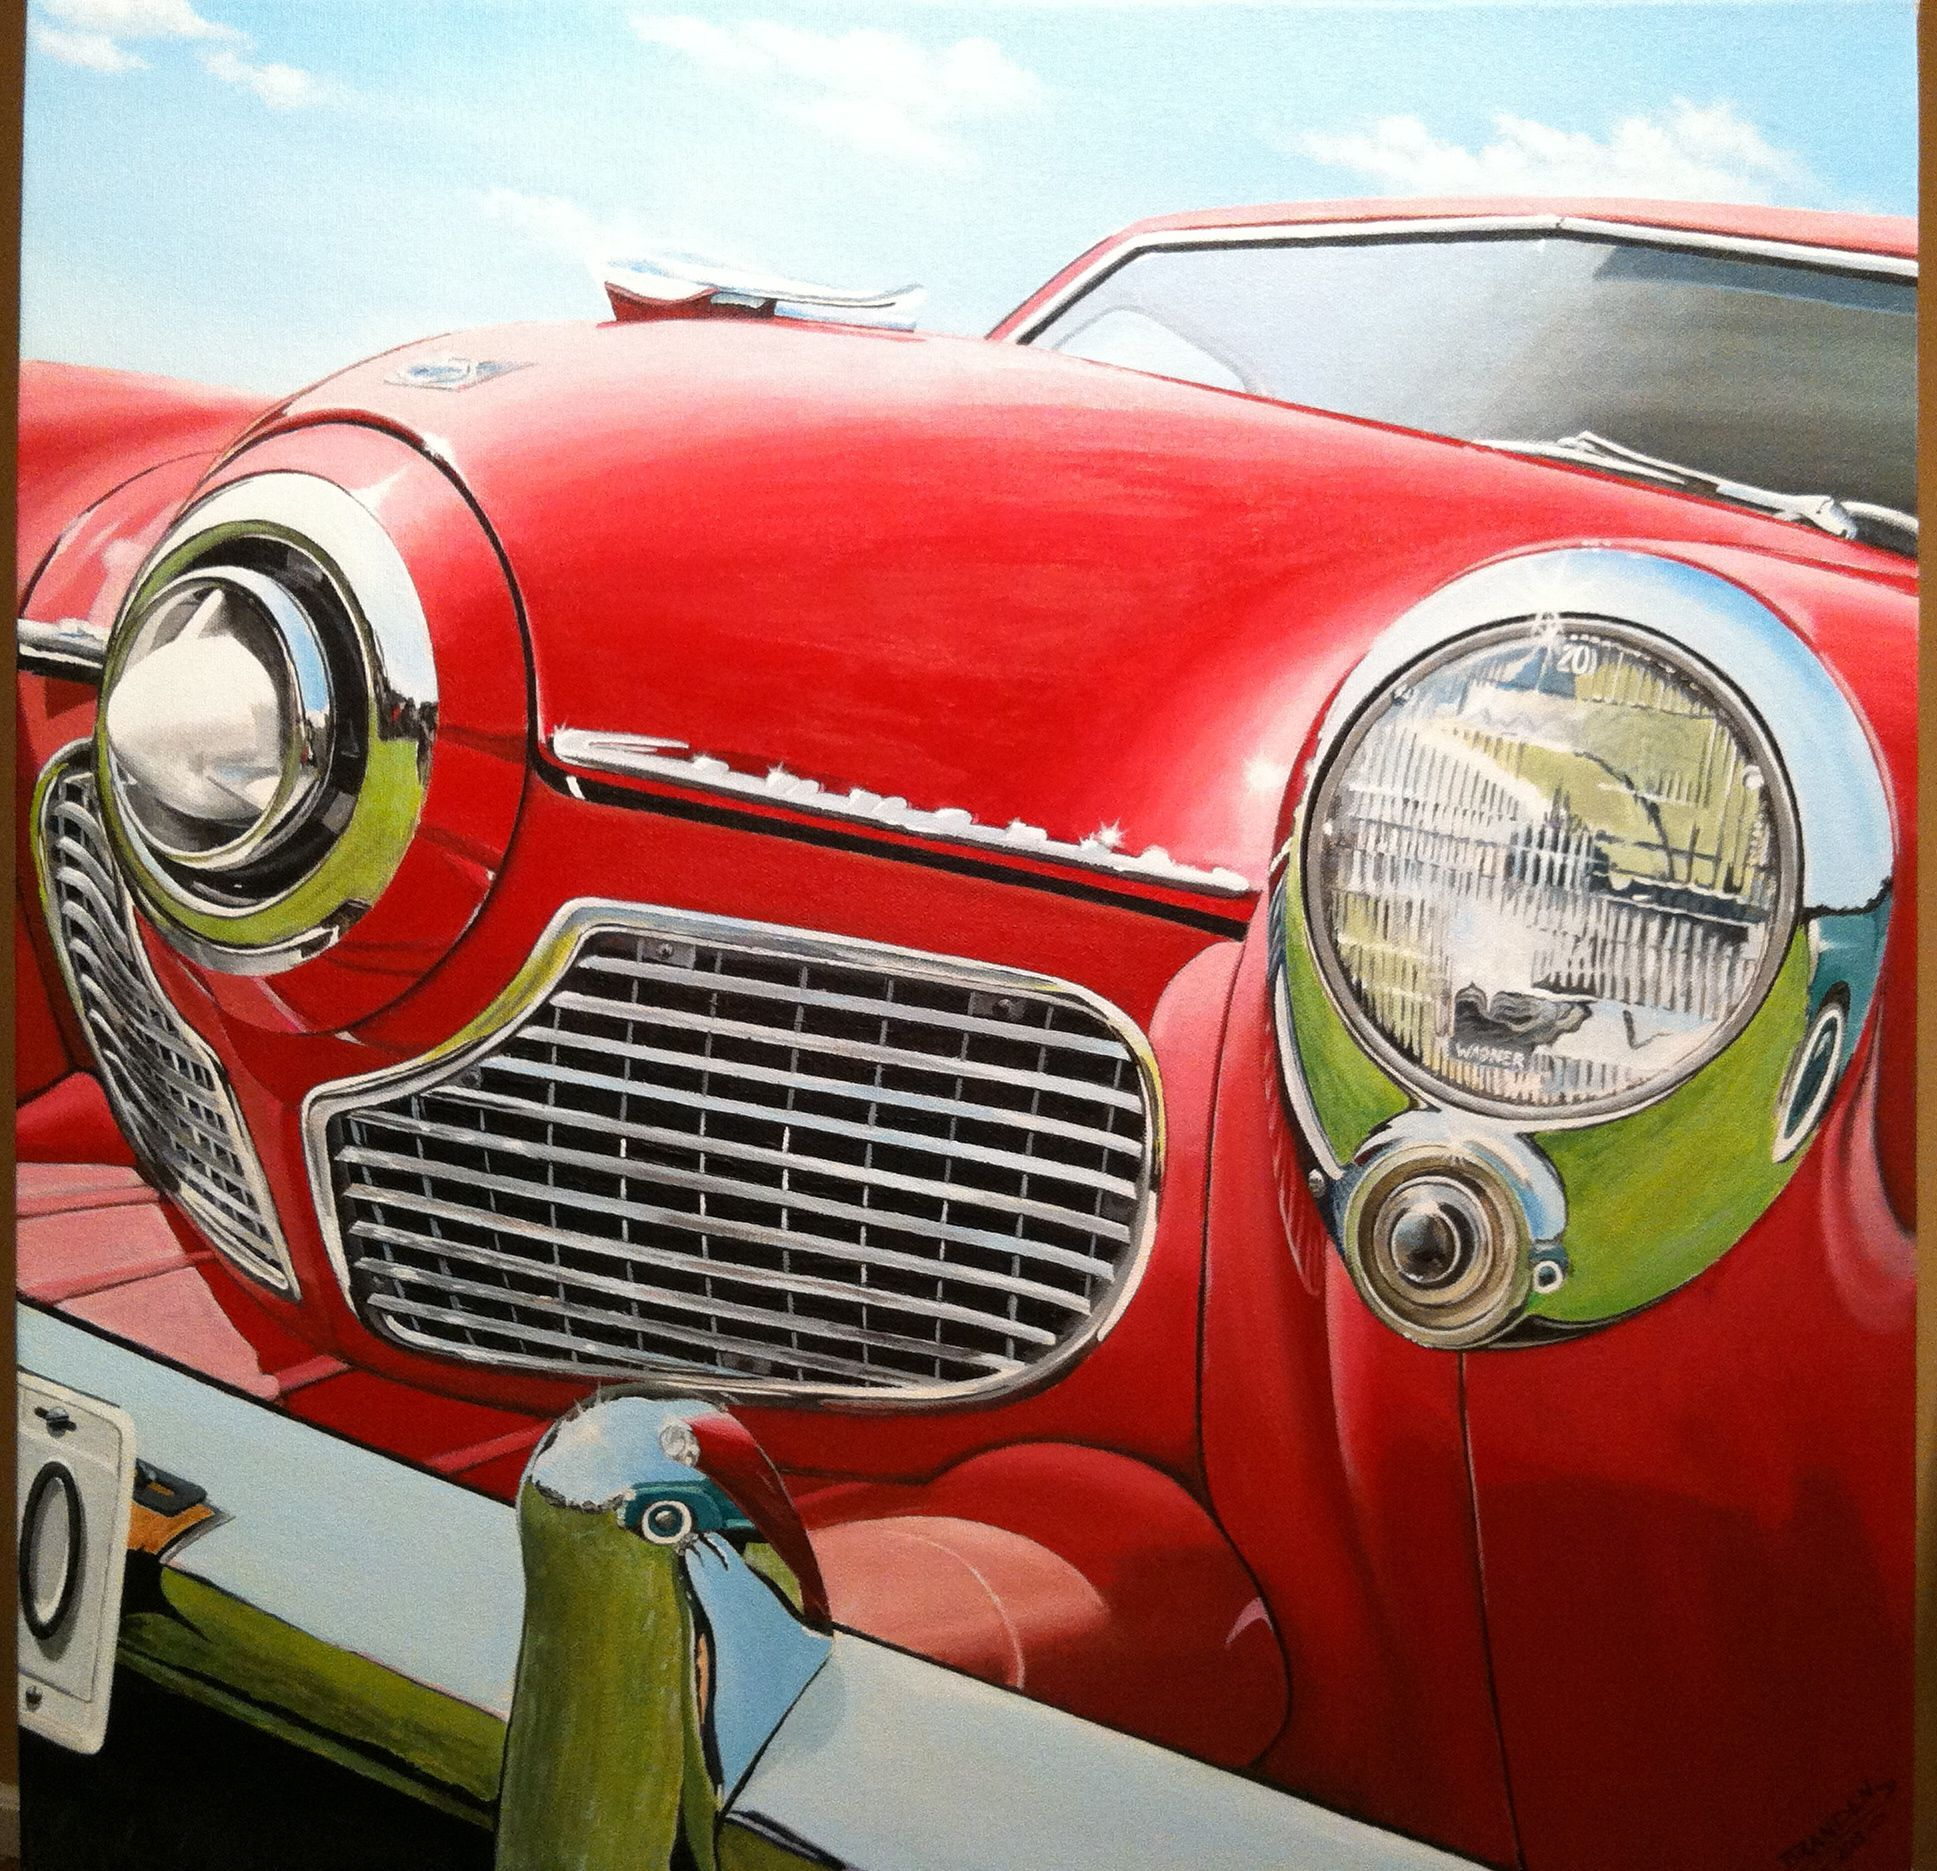 A 1951 Studebaker Commander. Acrylic on canvas. My website is www.autoartpaintings.com